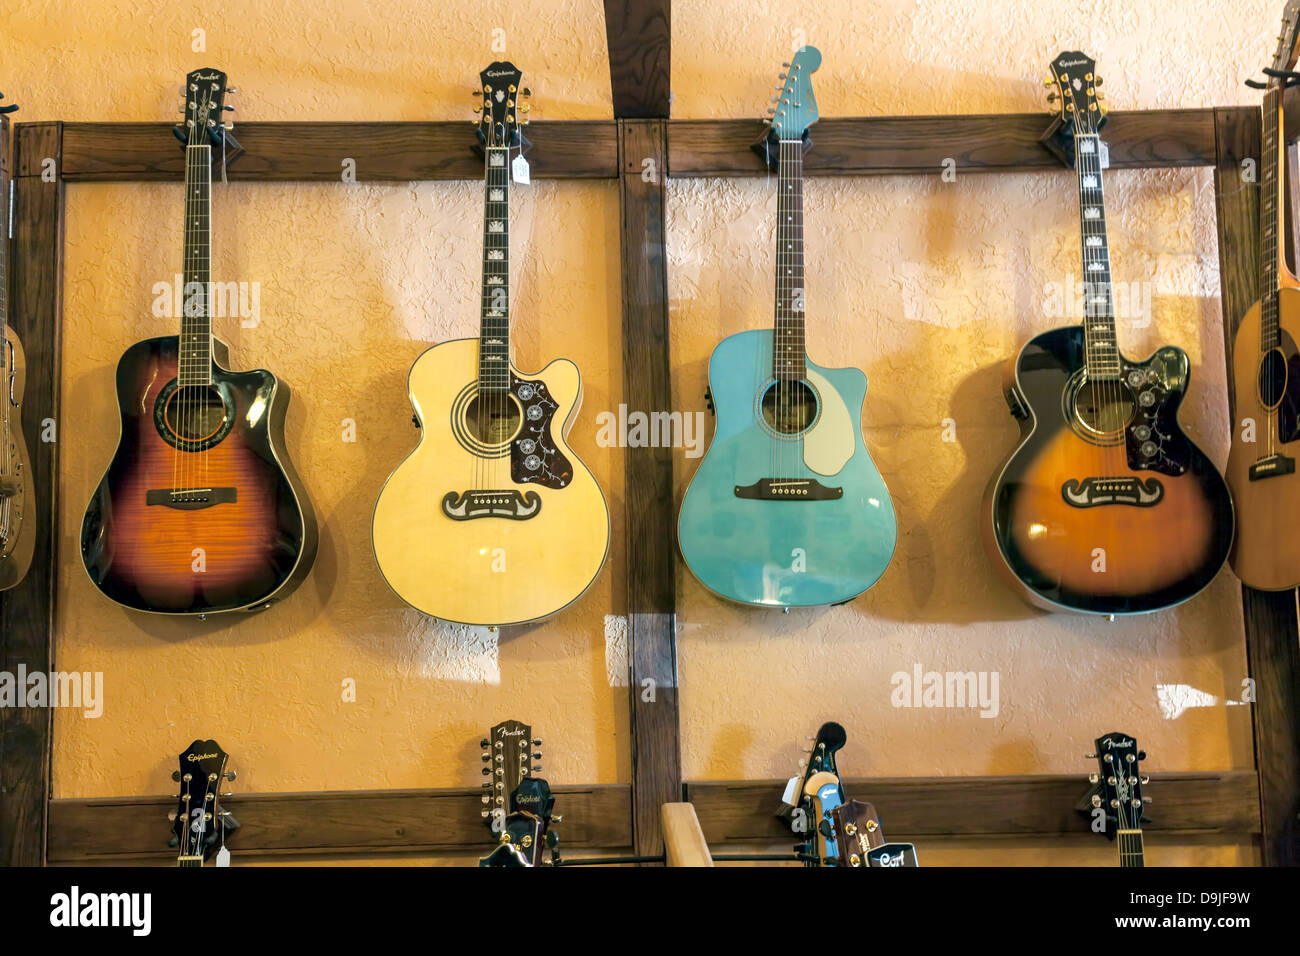 Colorés Et Quatre Epiphone Fender Guitare Acoustique Accrocher Sur Le Mur D Un Magasin De Musique à Micanopy Pittoresque En Floride Photo Stock Alamy